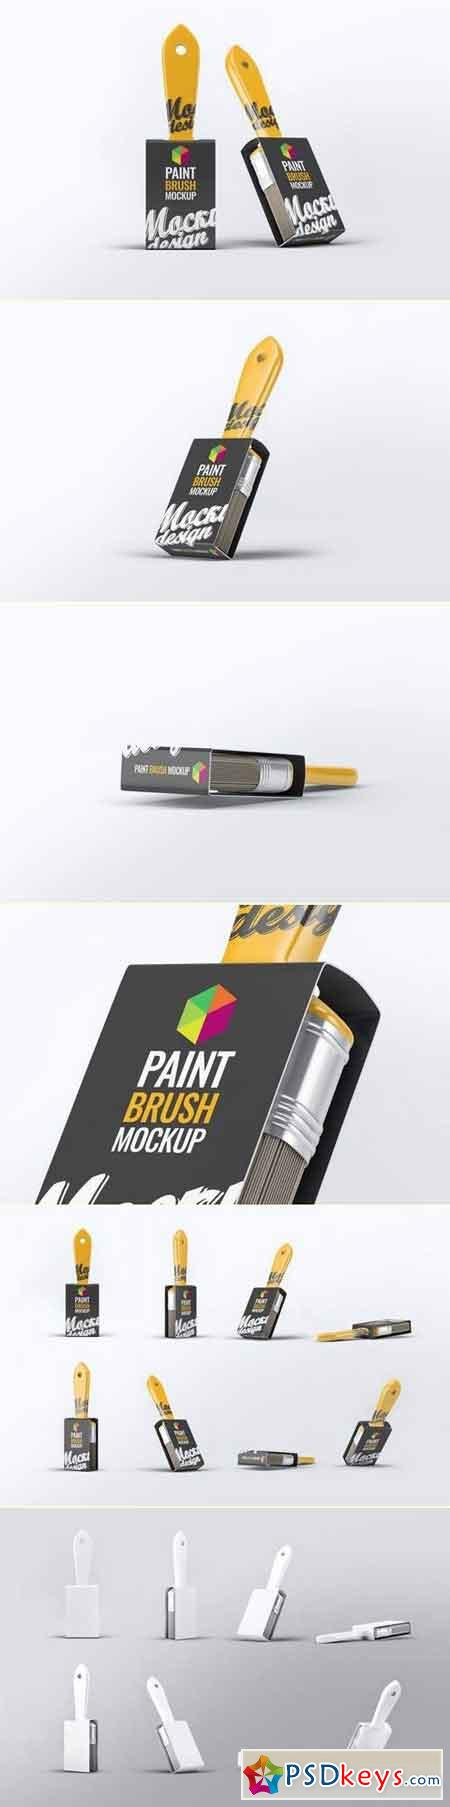 Paint Brush Mock-Up » Free Download Photoshop Vector Stock image Via